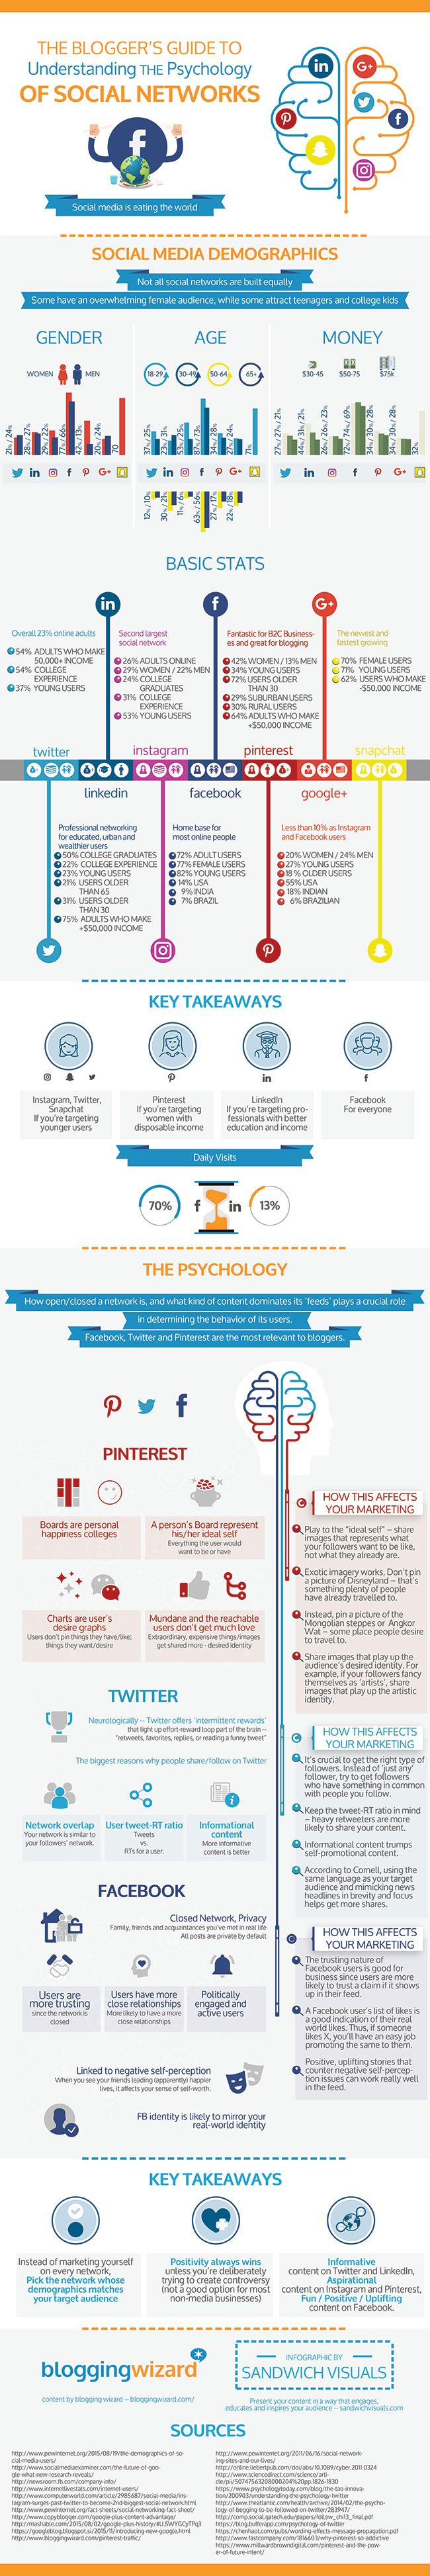 What Are The Demographics And Psychology Behind The Big Social Networks? #infographic